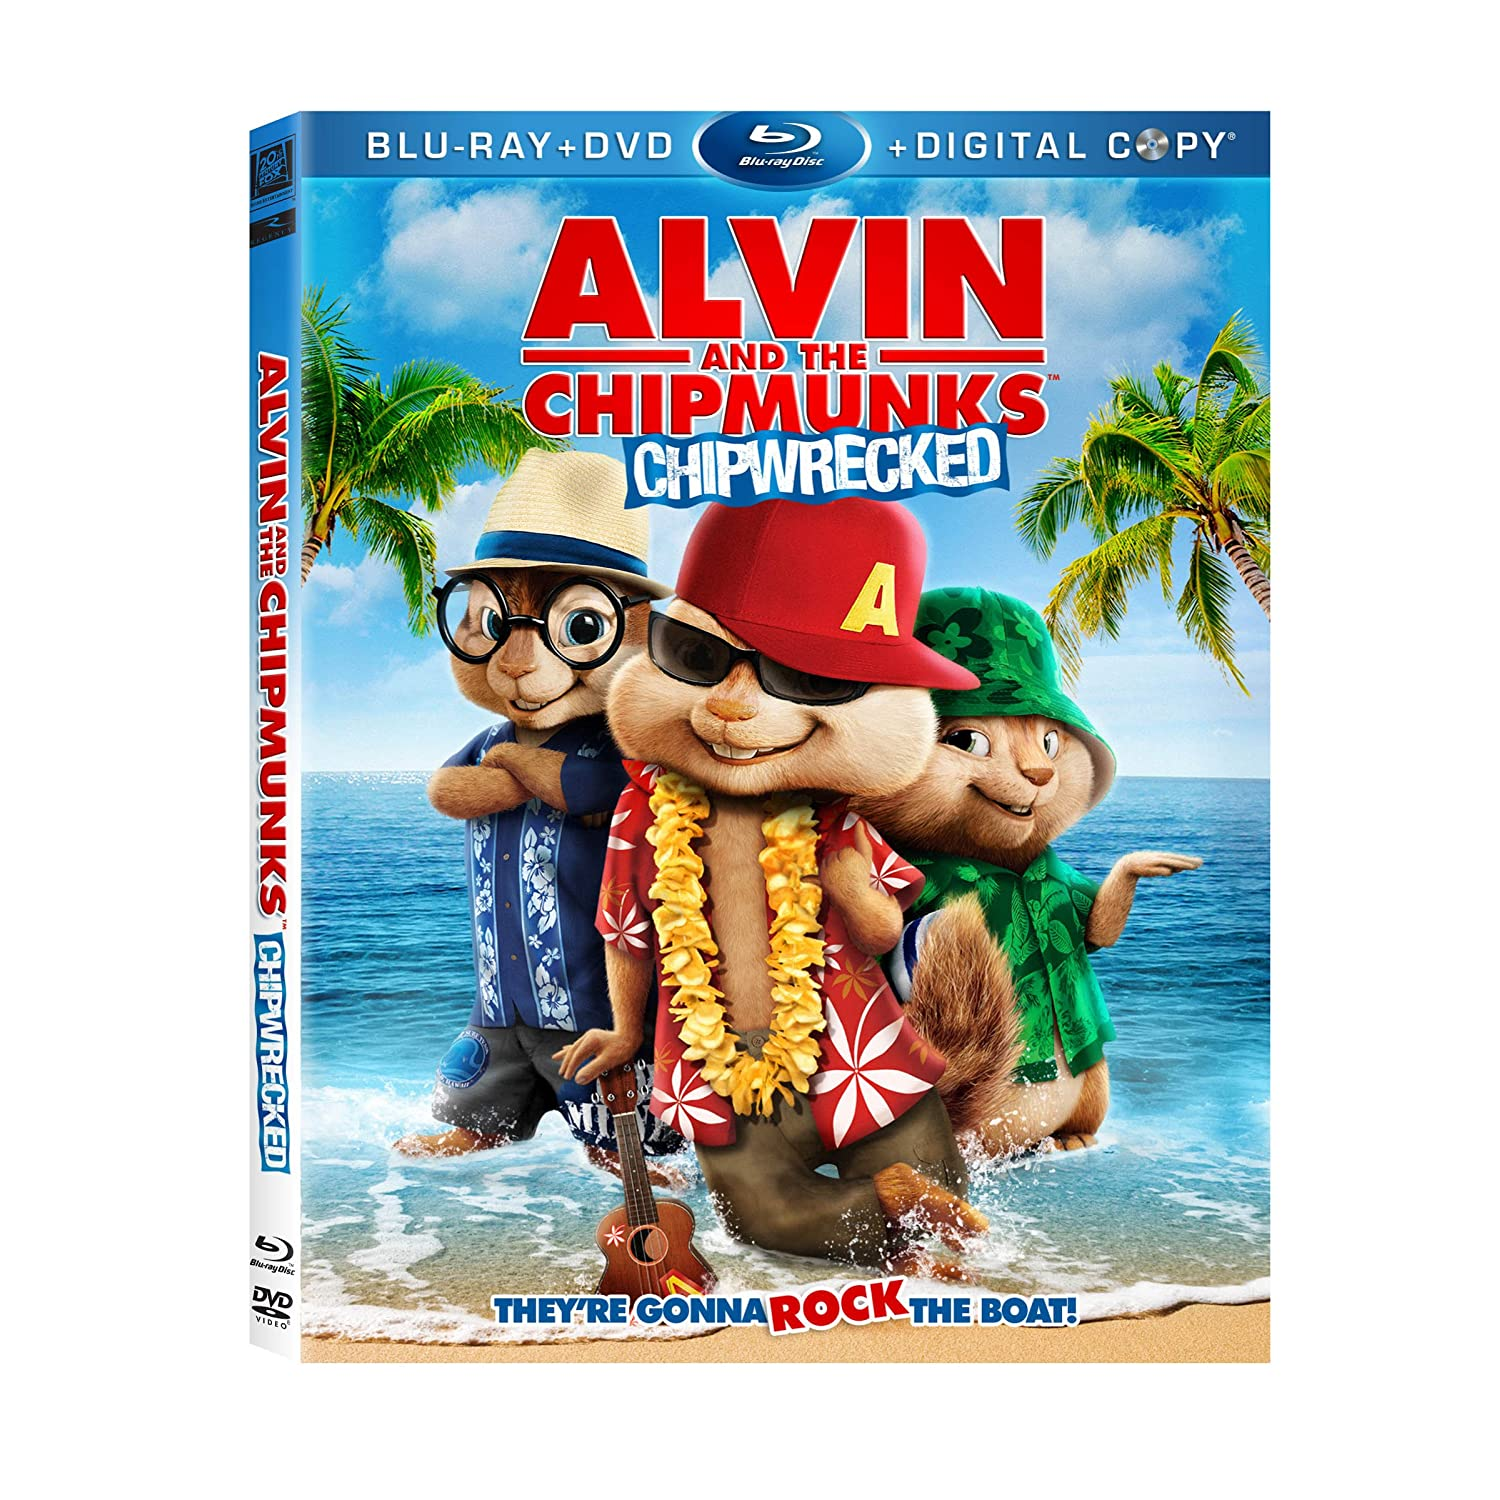 Alvin And The Chipmunks Chipwrecked Movie Review 2 Boys 1 Girl One Crazy Mom